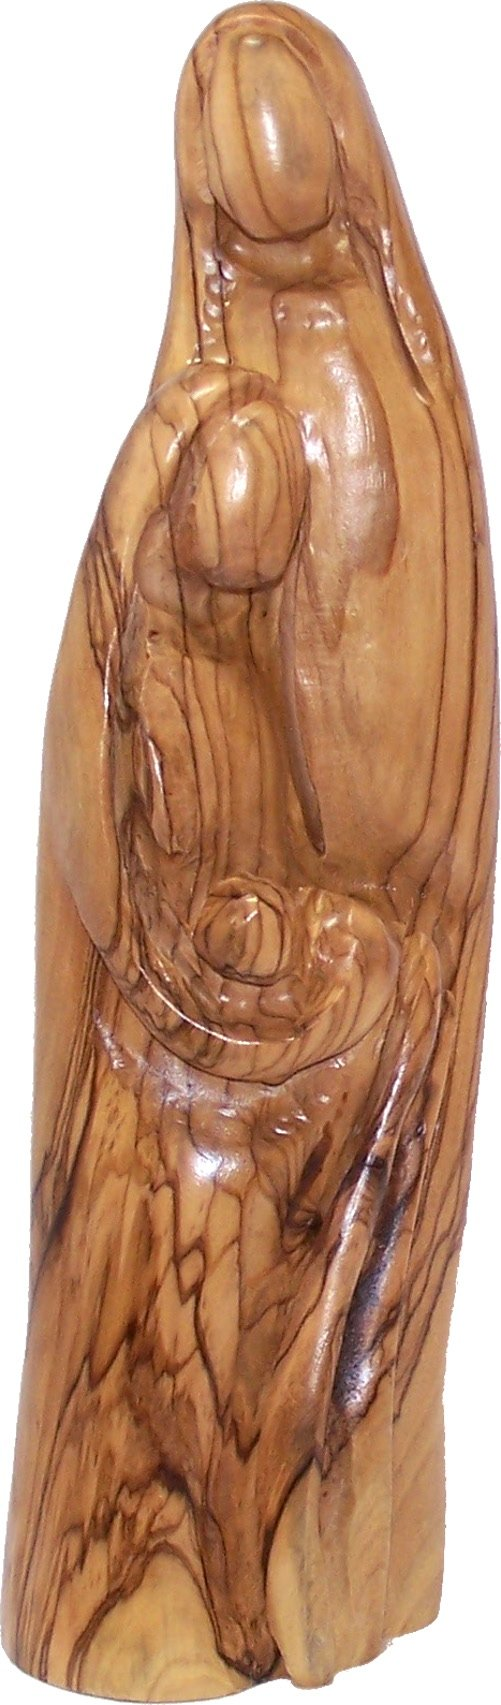 Holy Land Market Olive Wood Holy Family Statue (9.6 Inches) by Holy Land Market